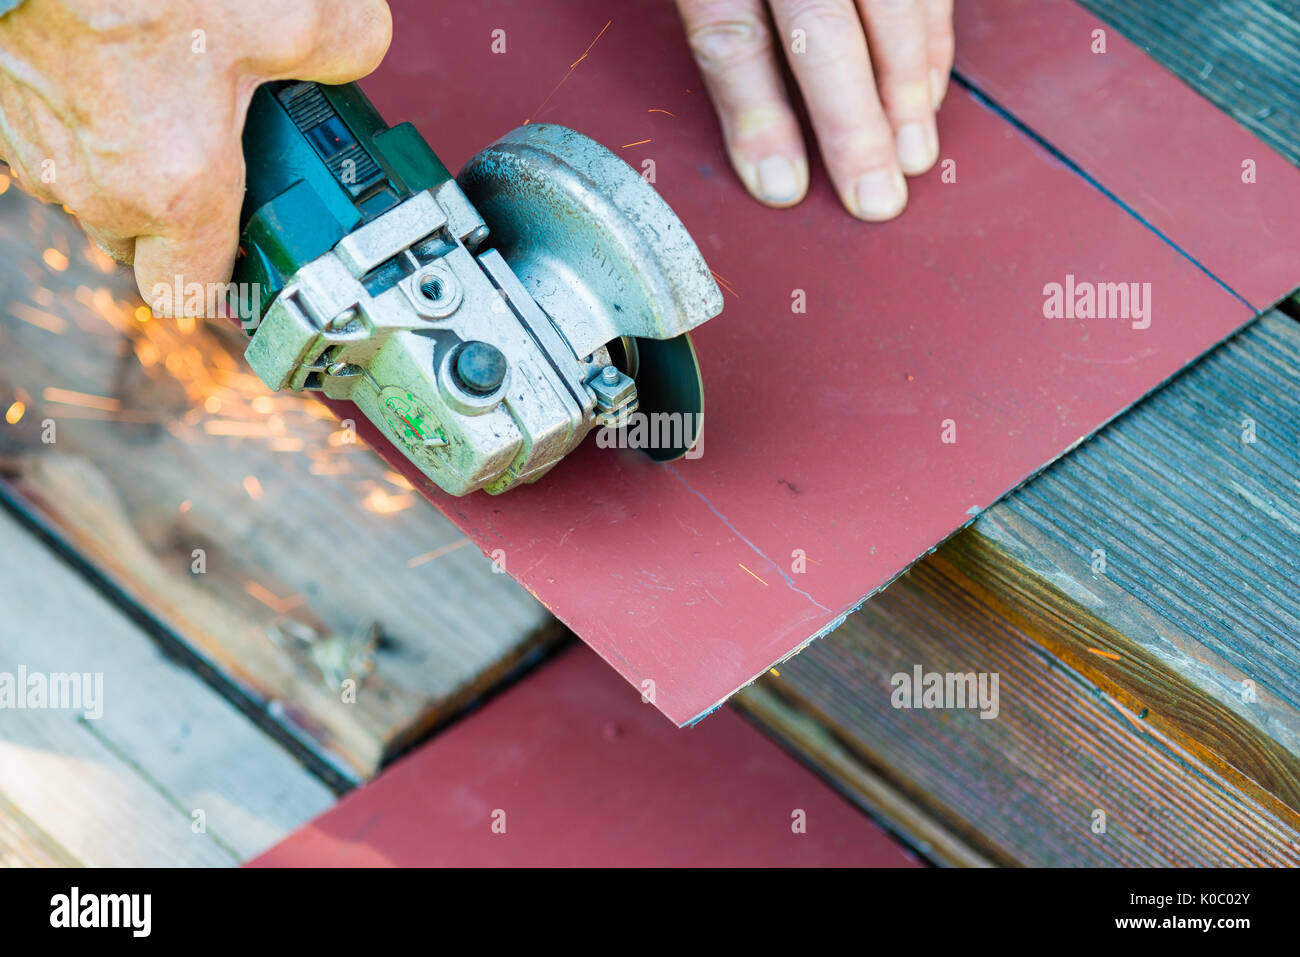 Close-up of worker cutting metal with grinder. Sparks while grinding iron - Stock Image